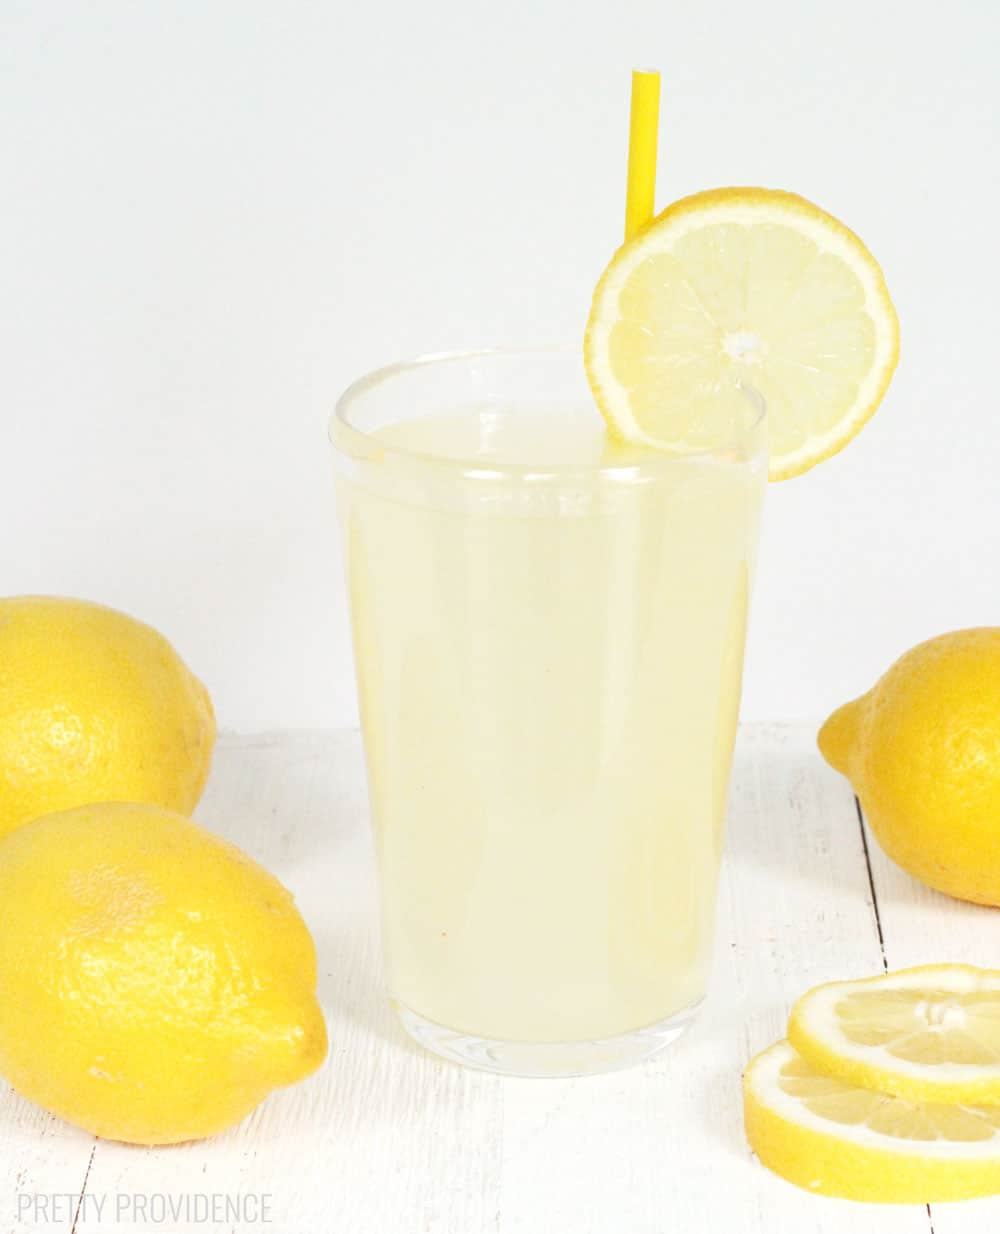 Fresh squeezed lemonade in a clear glass with lemon slice and yellow straw as garnish and lemons around it on the sides.